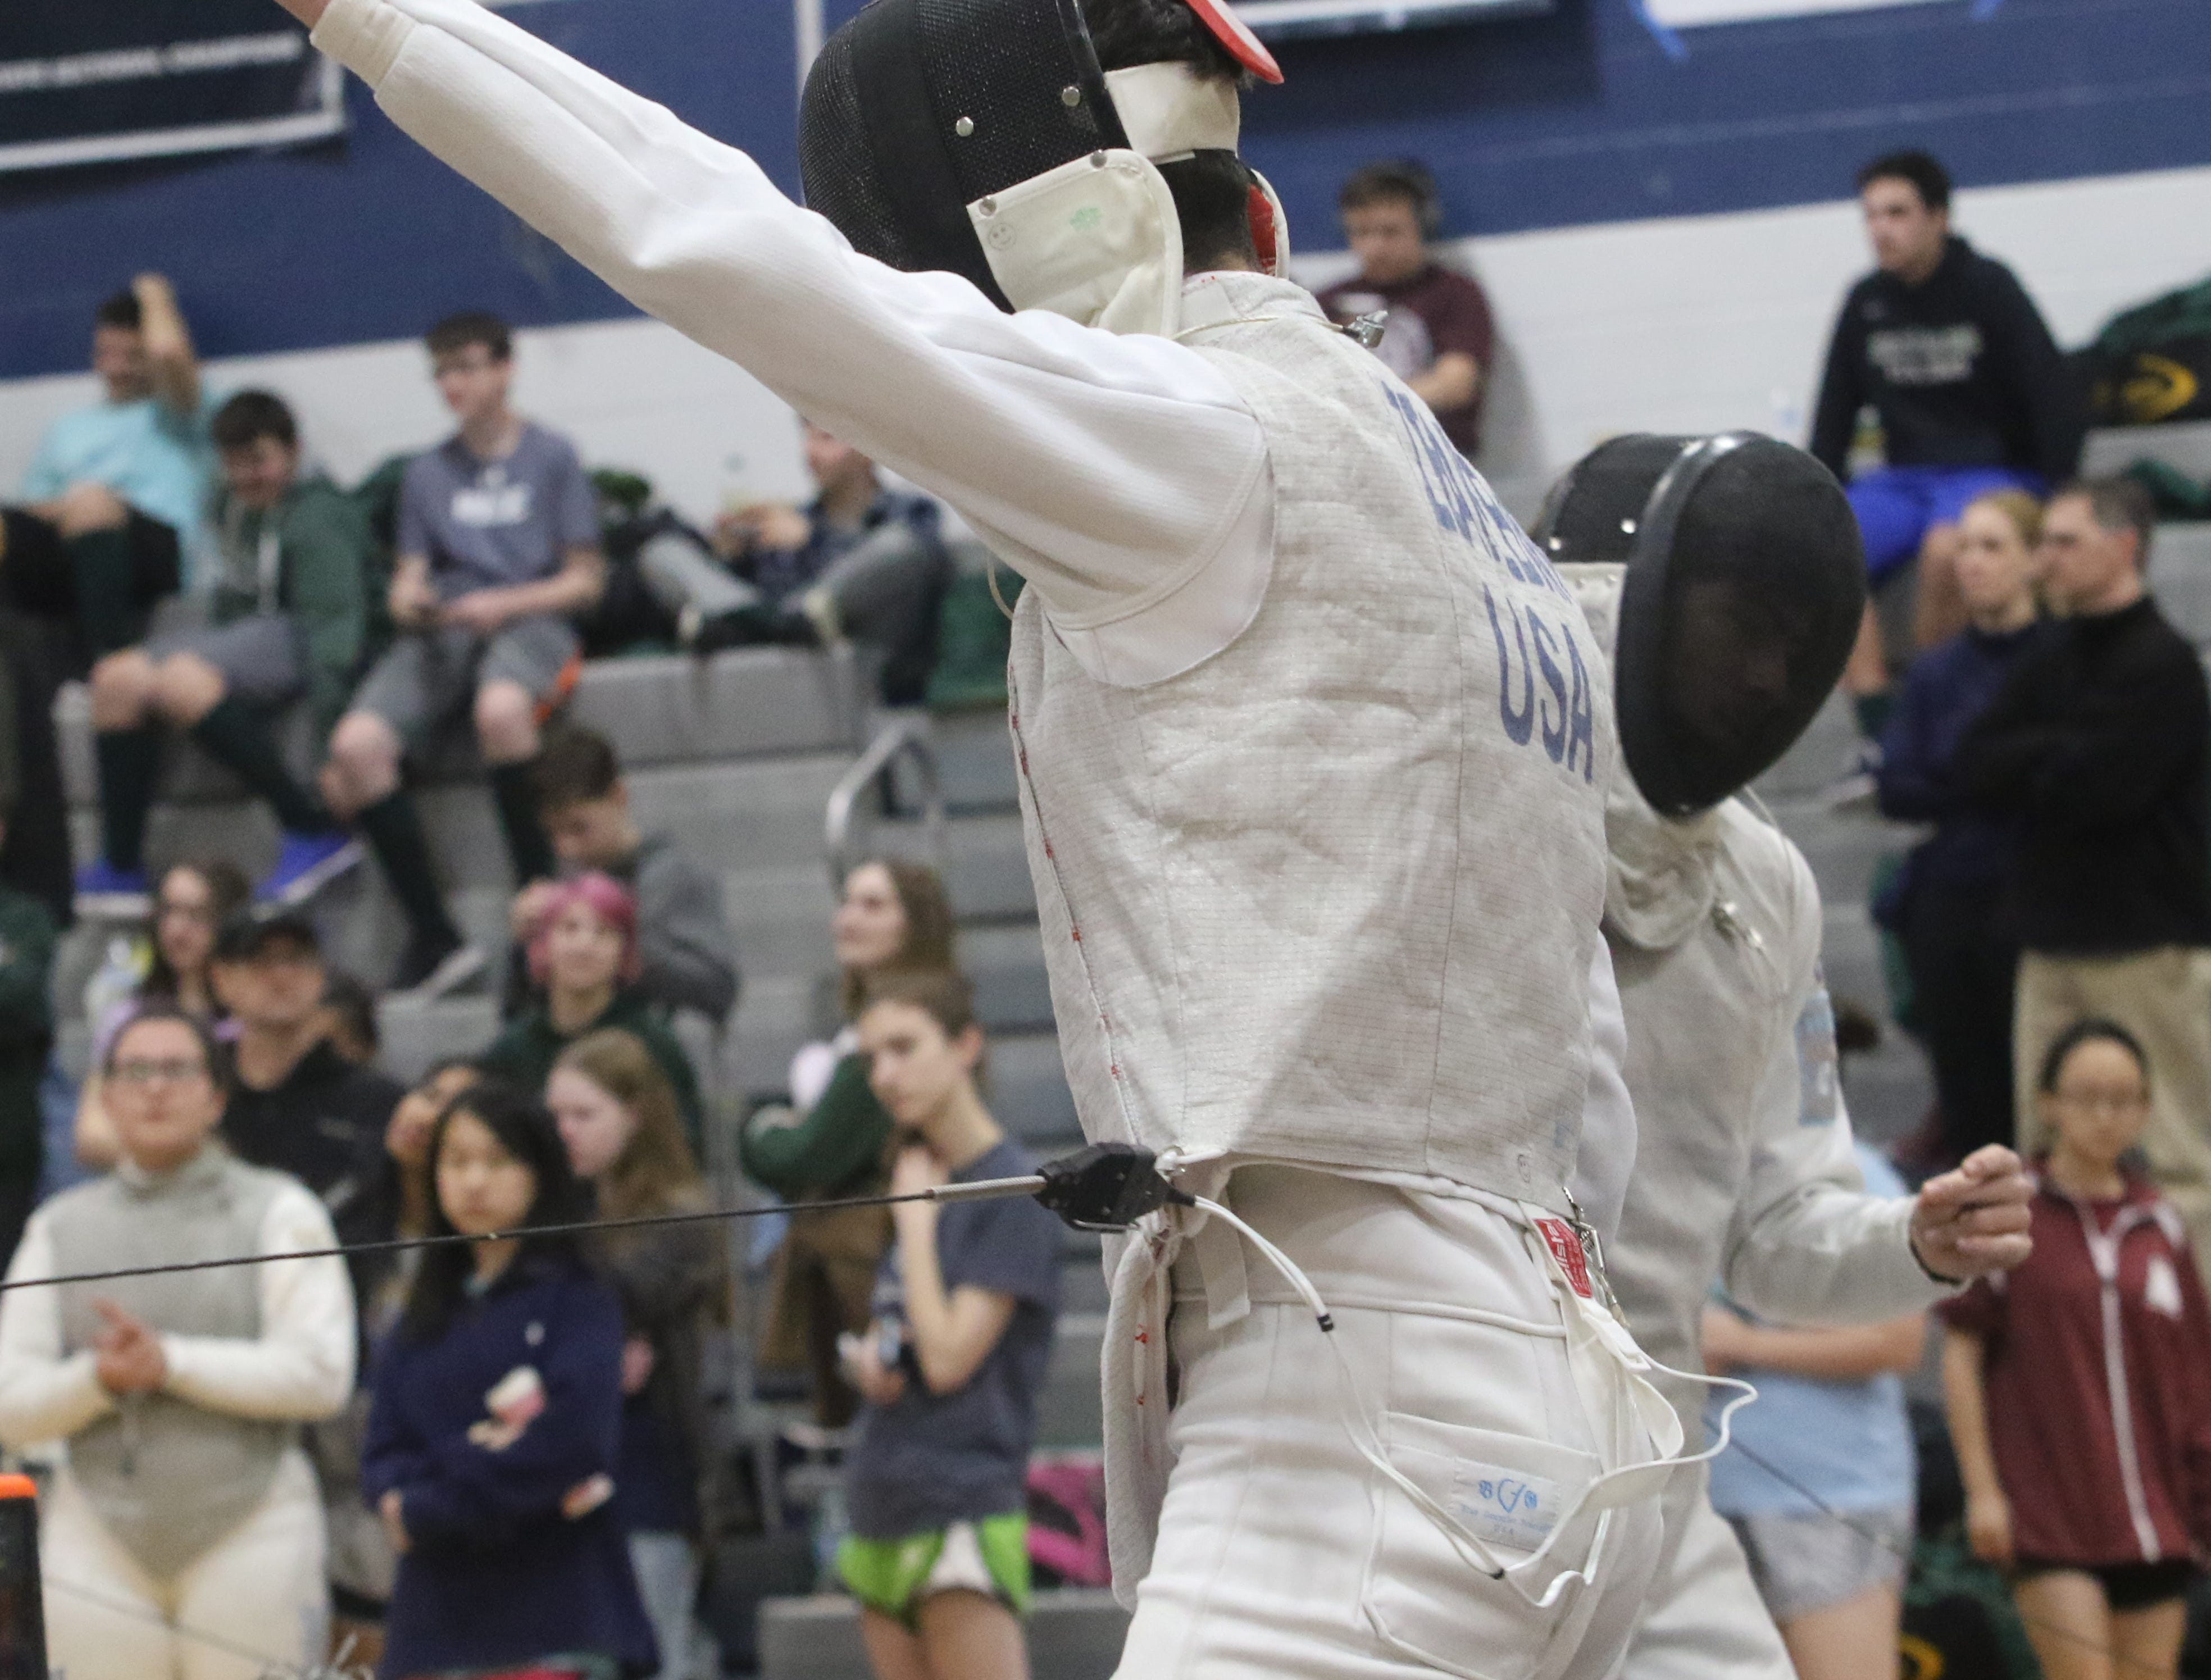 Zak Zeareban of Chatham celebrates a point against his opponent, Nate Mange of West Morris in the foil final.